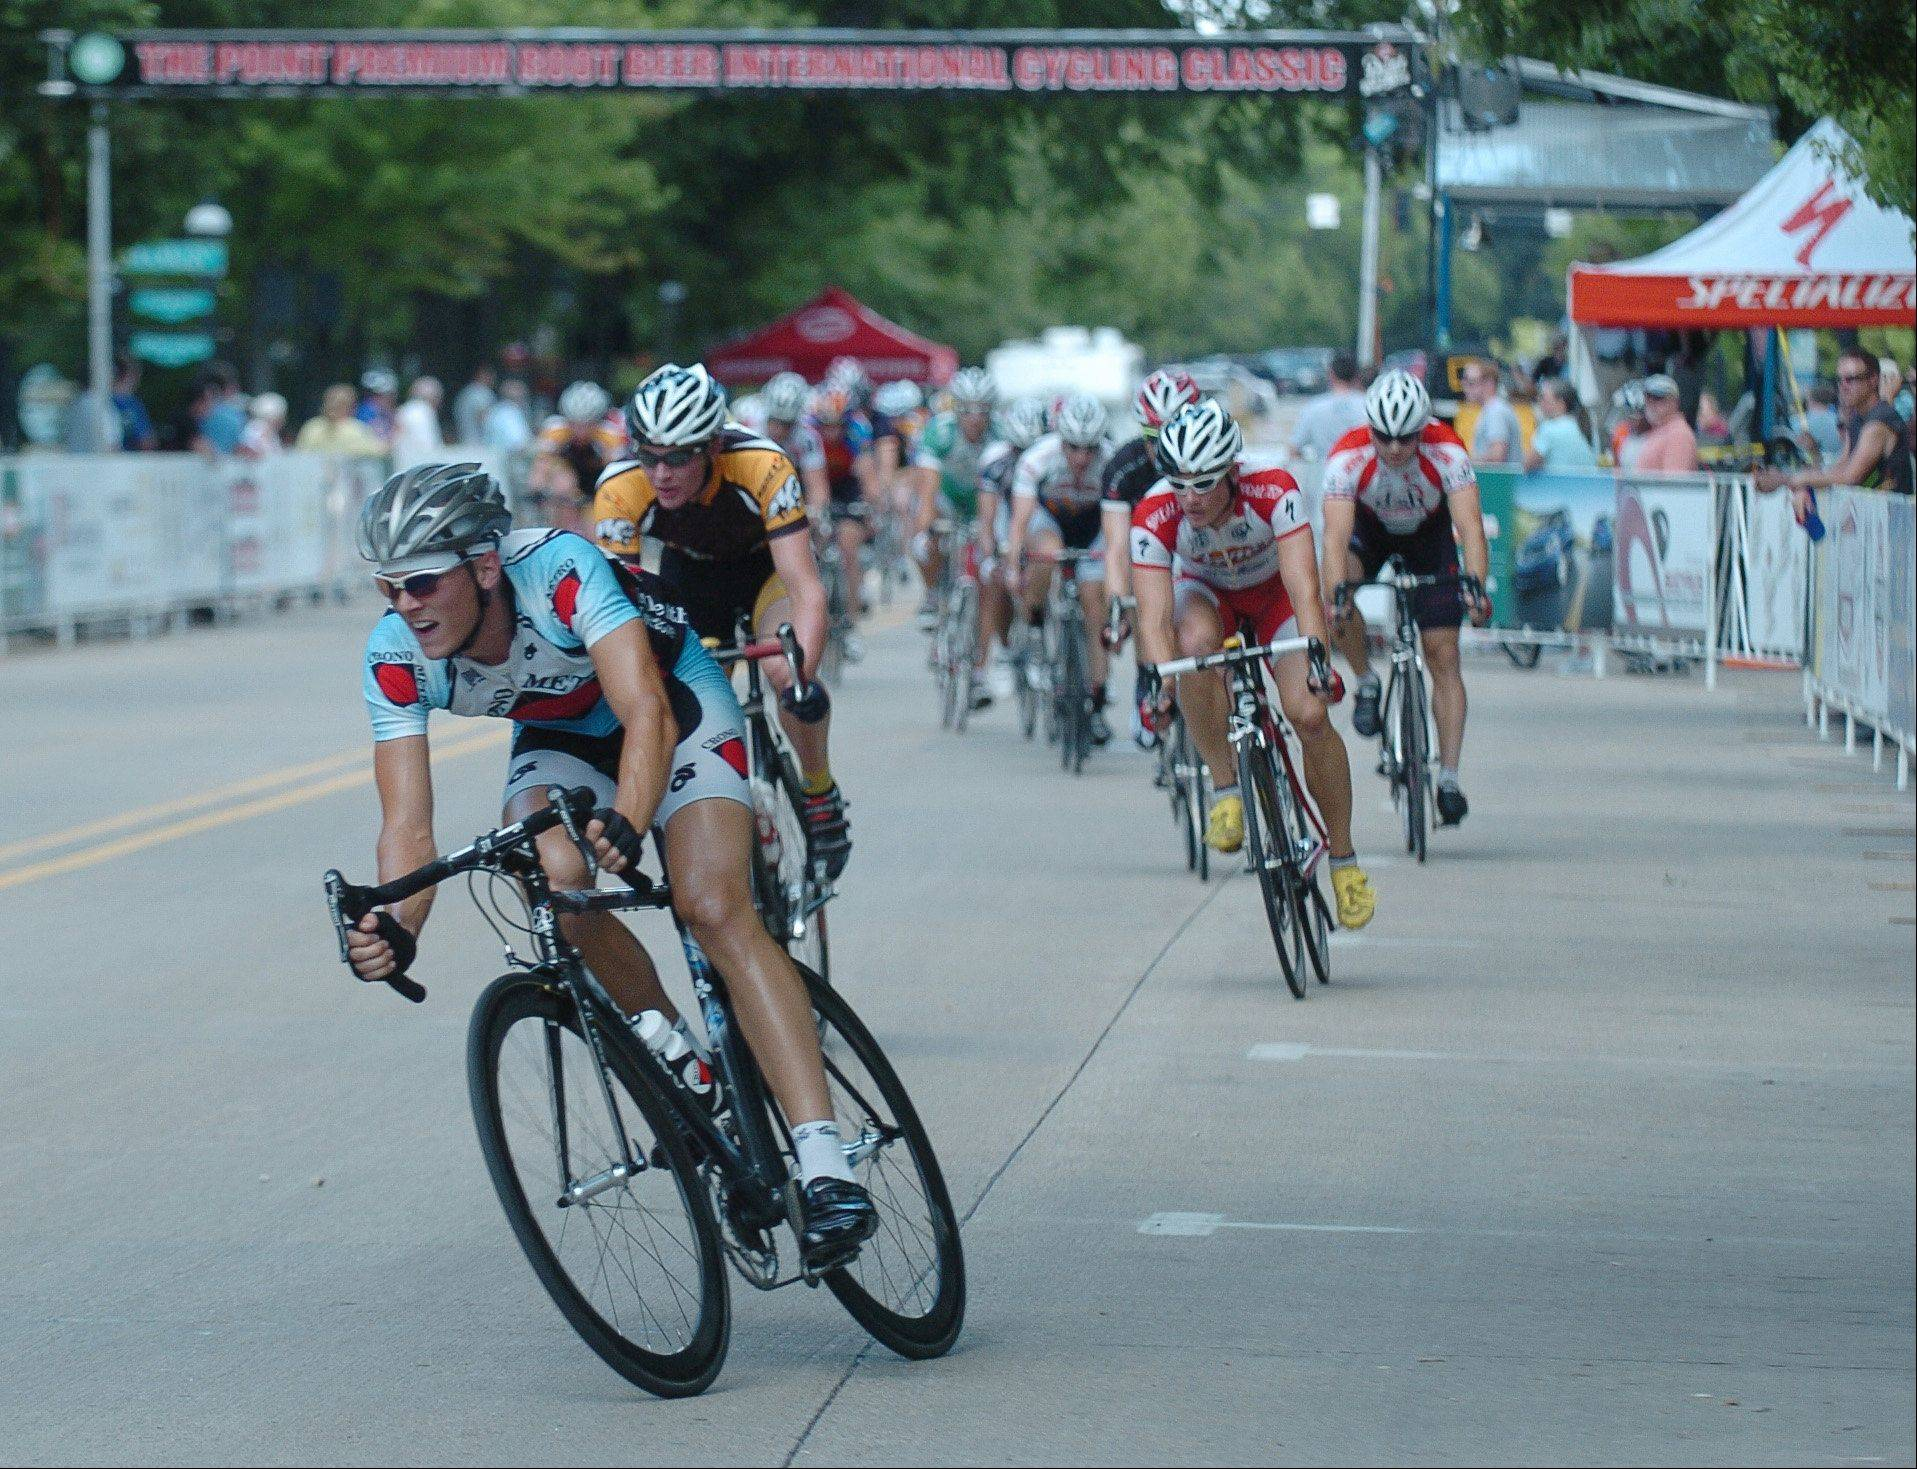 Cyclists race in last year's Mill Race Cyclery Classic in Geneva. This year there will be approximately 100 to 125 cyclists in each of seven races of the Geneva Cycling Grand Prix, which begins at 10 a.m. Saturday. The event is sponsored by Bicycle Heaven in Geneva.